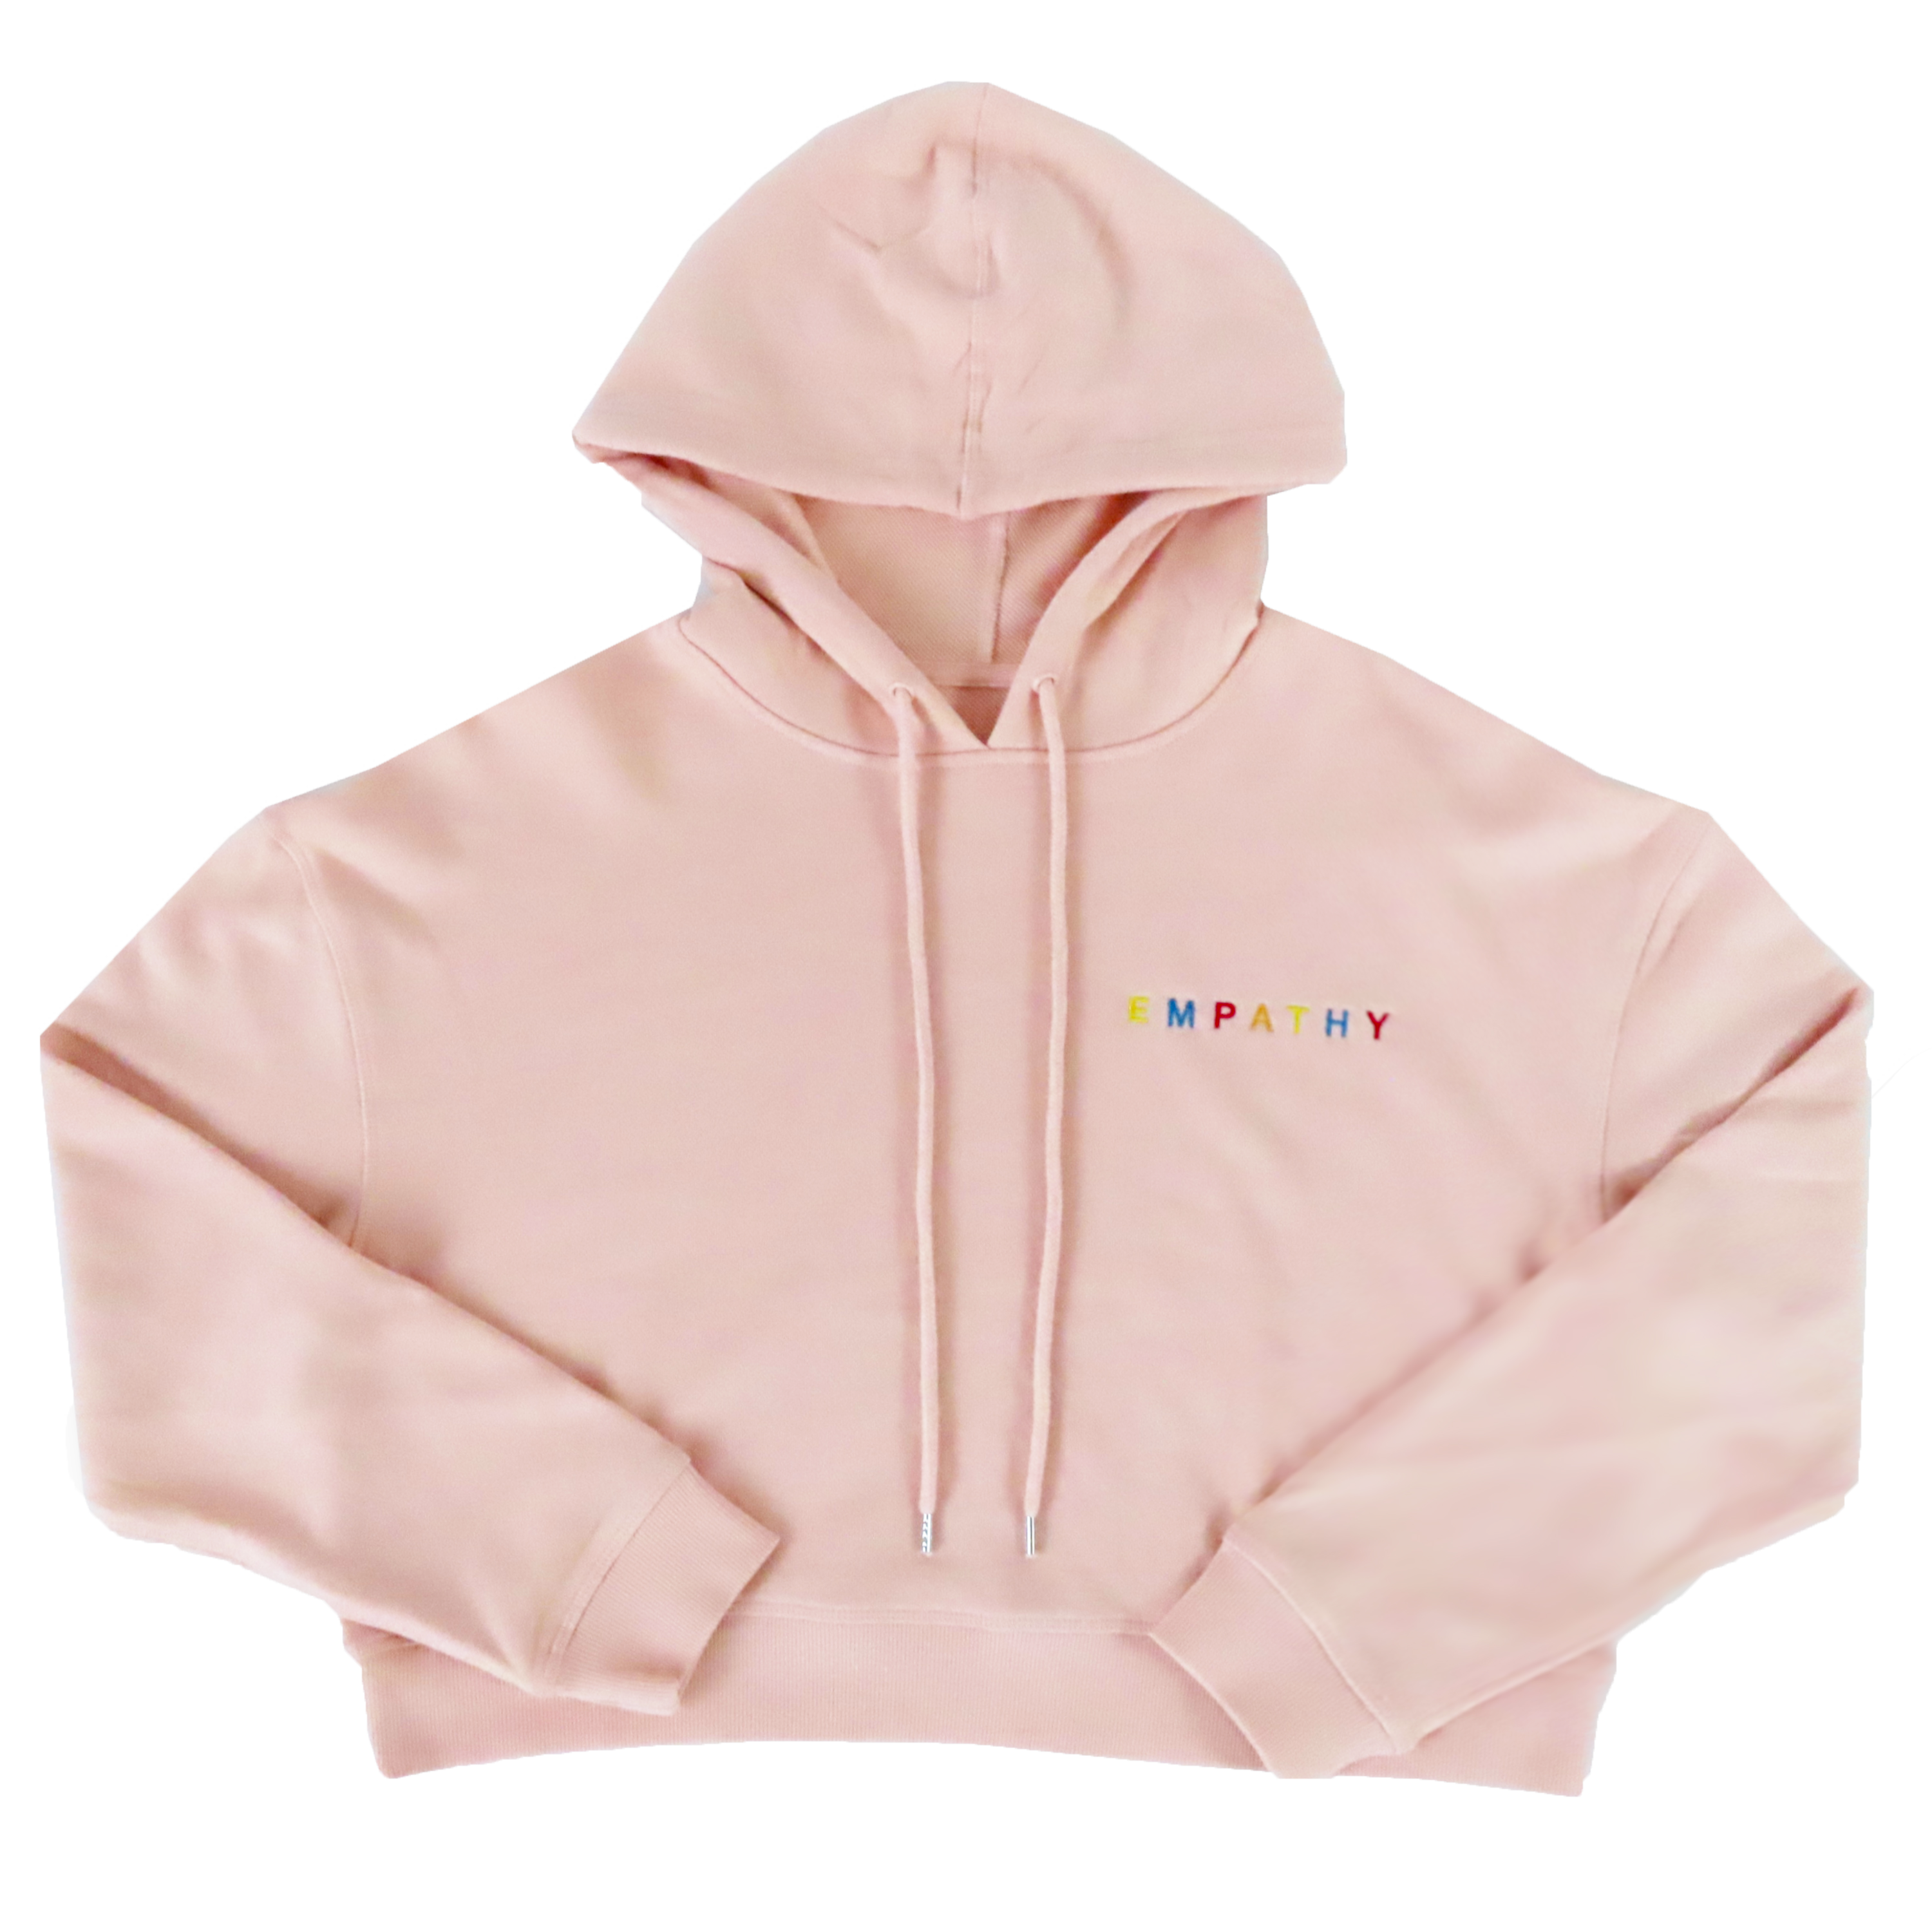 Empathy Women's Cropped Hoodie - Pale Pink